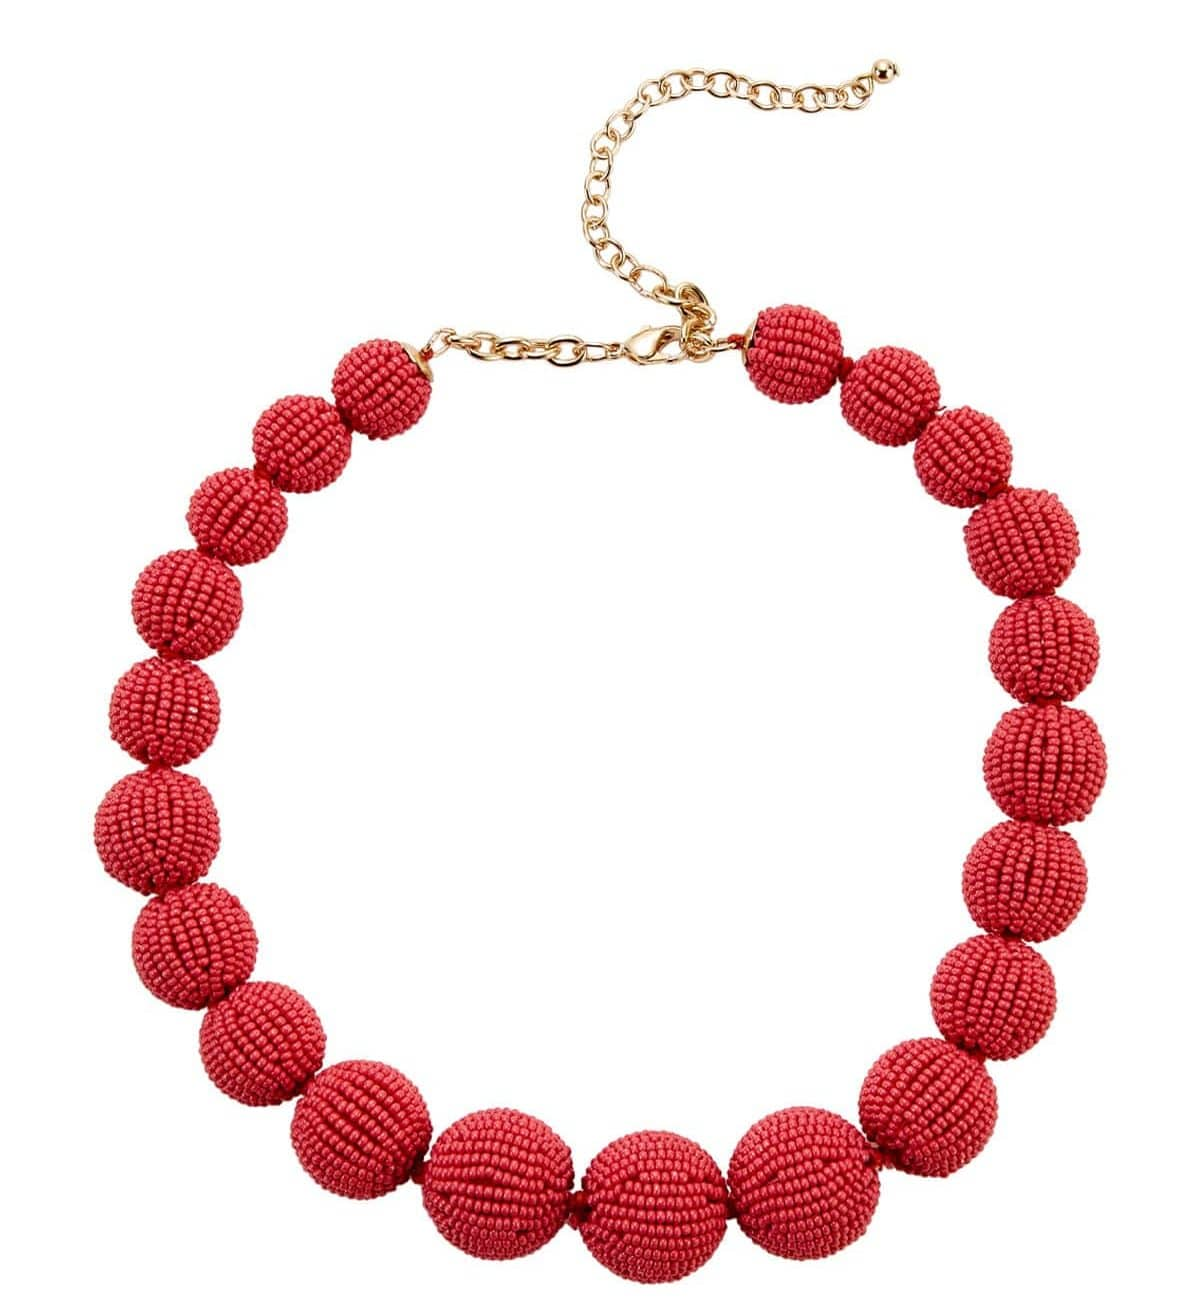 Nancy Pale Red Beaded Necklace